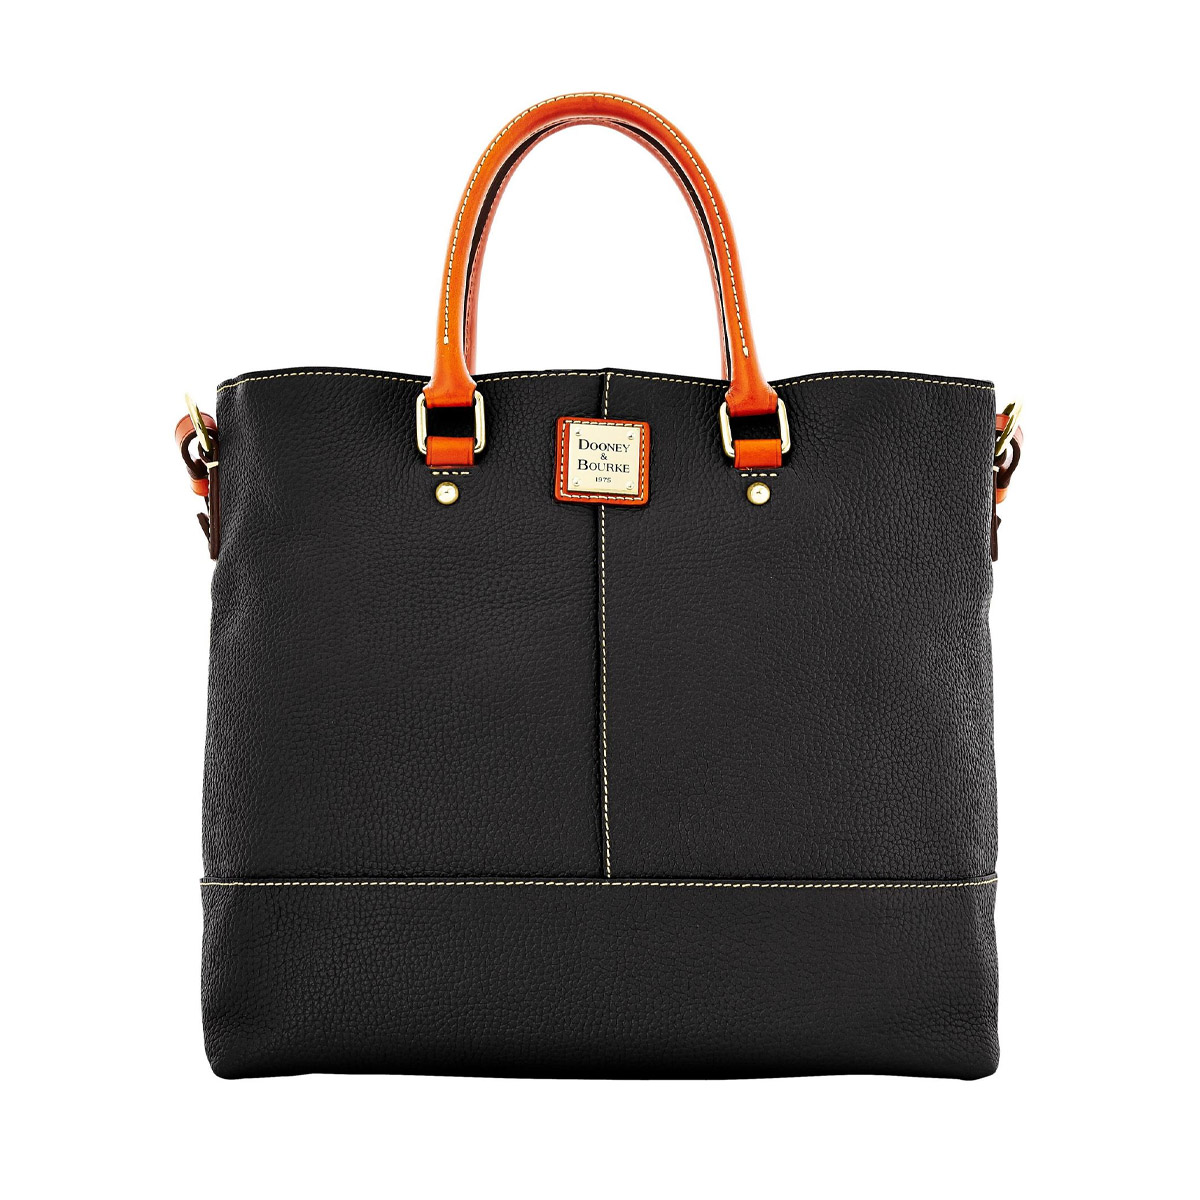 Dooney & Bourke Chelsea handbag - The Chelsea bag, generously provided by D&B is made of stunning textured black leather which is as durable as it is beautiful. Featuring a spacious interior this bag can be worn over the shoulder and taken anywhere!Retail Value: $308.00